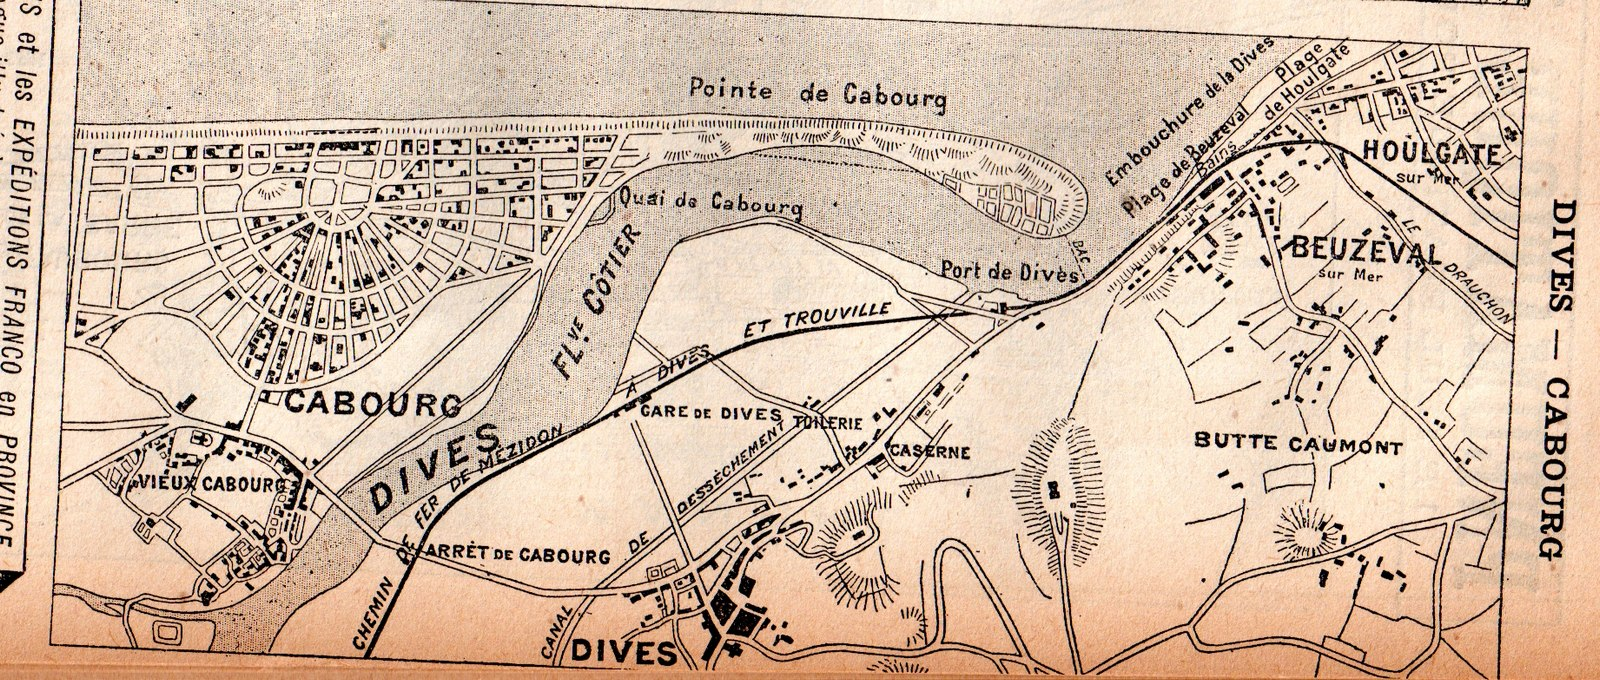 arret_cabourg1893-red.jpg